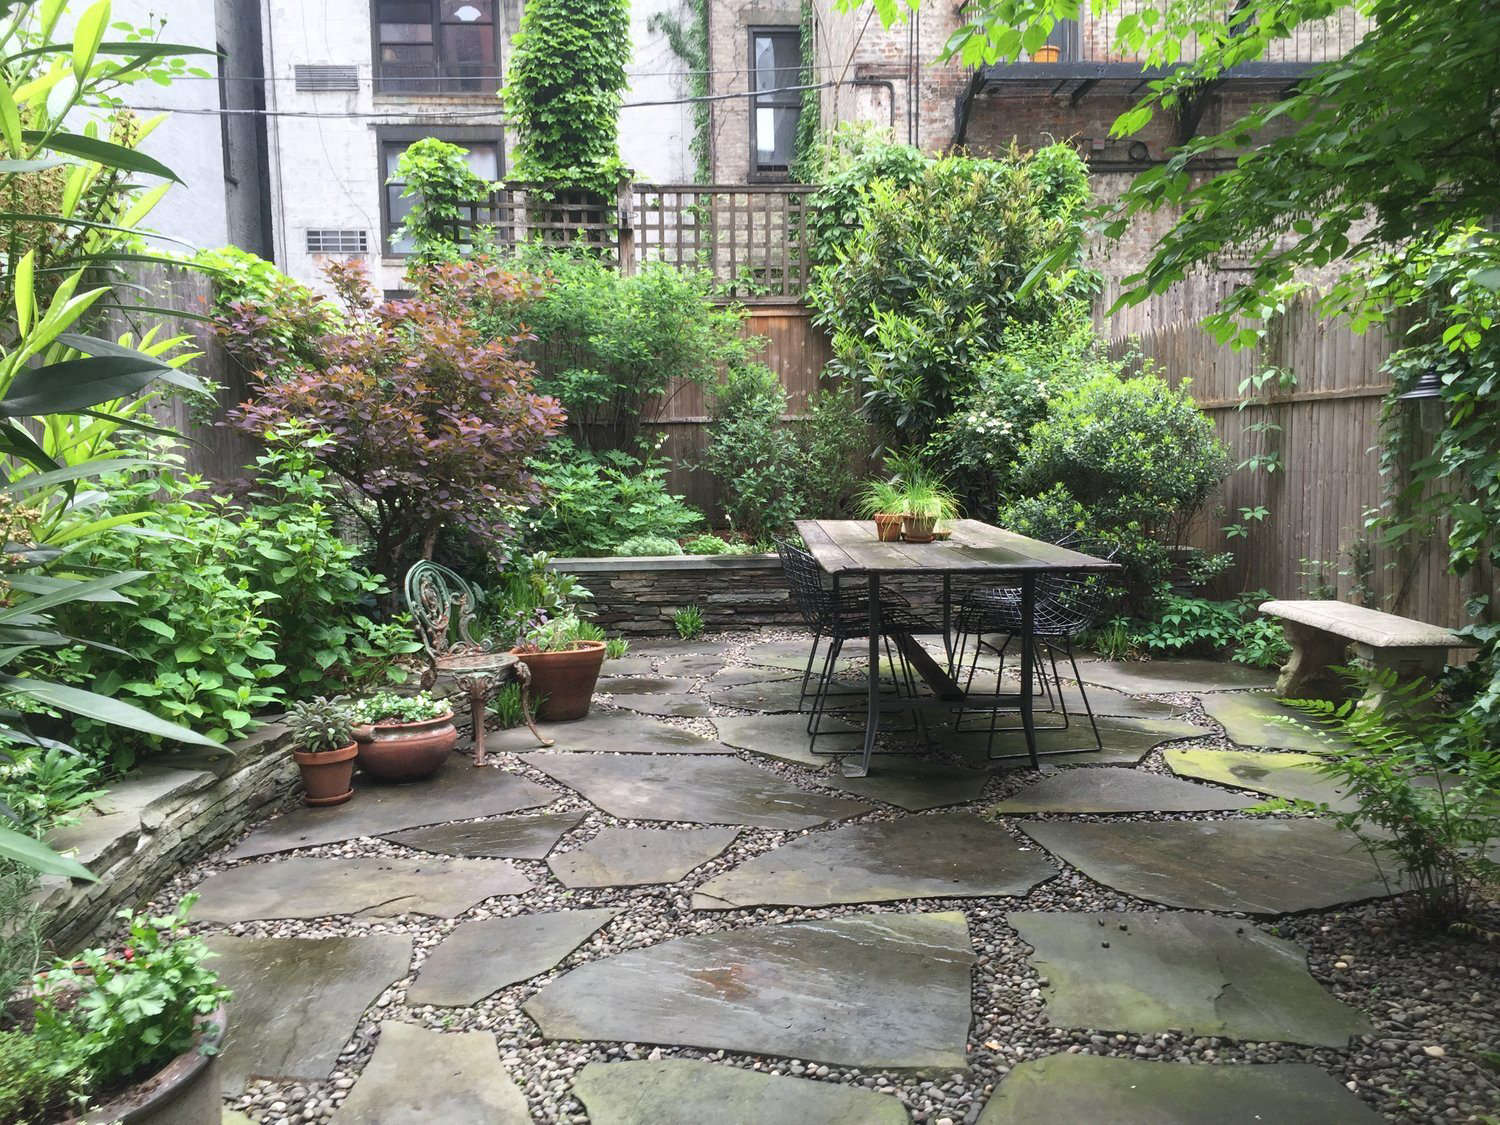 Rental Garden Makeovers: 10 Best Budget Ideas for an ... on Garden Design Ideas On A Budget  id=60444